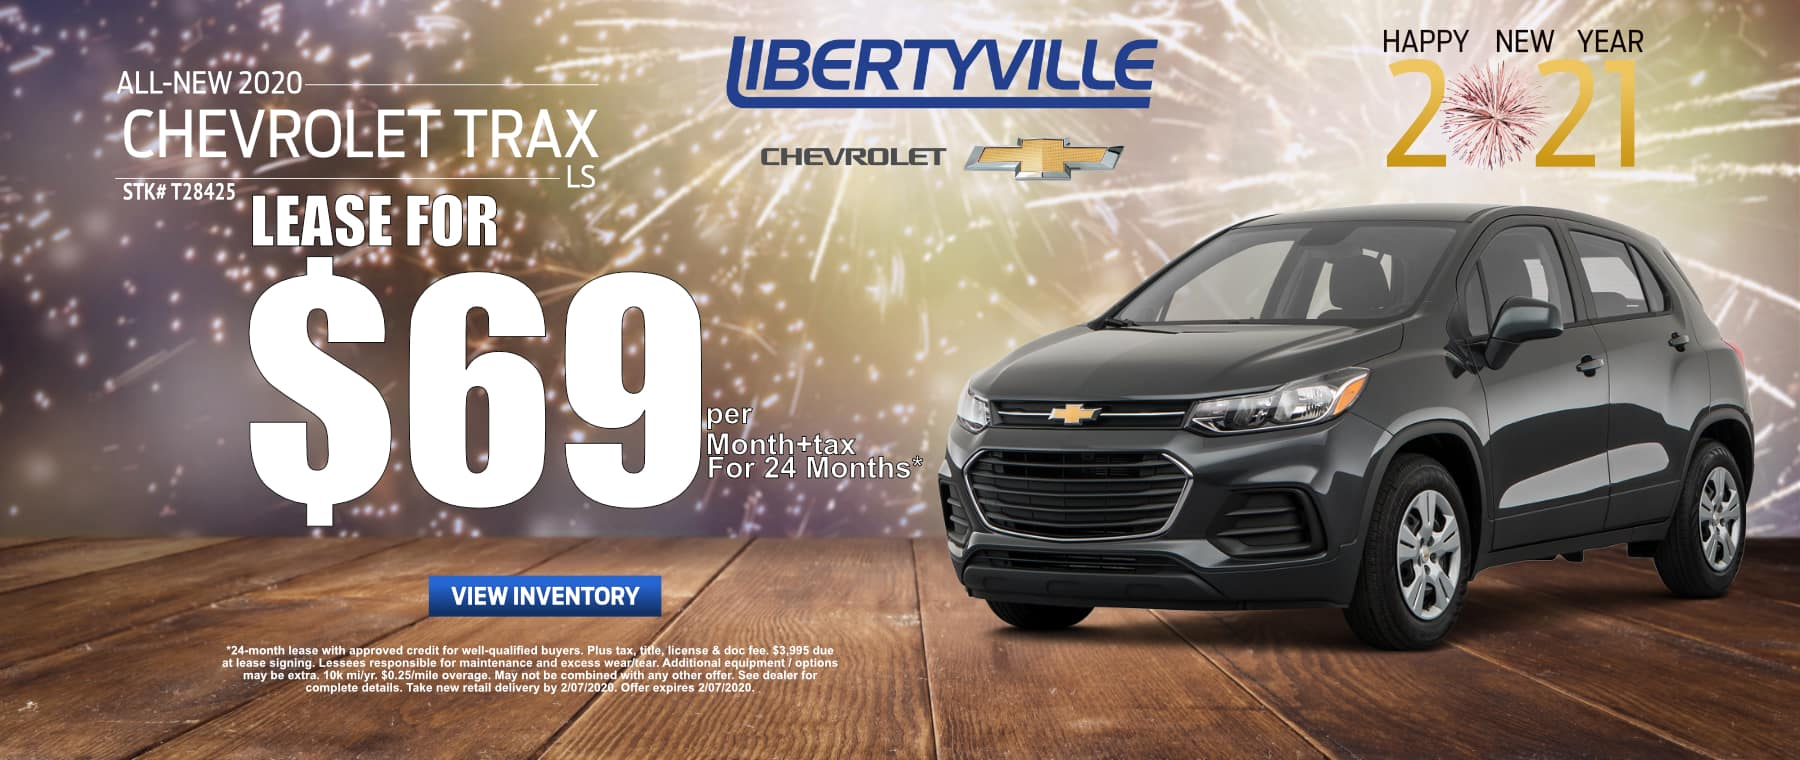 R_January-2021_Trax_LS_Lease_Libertyville